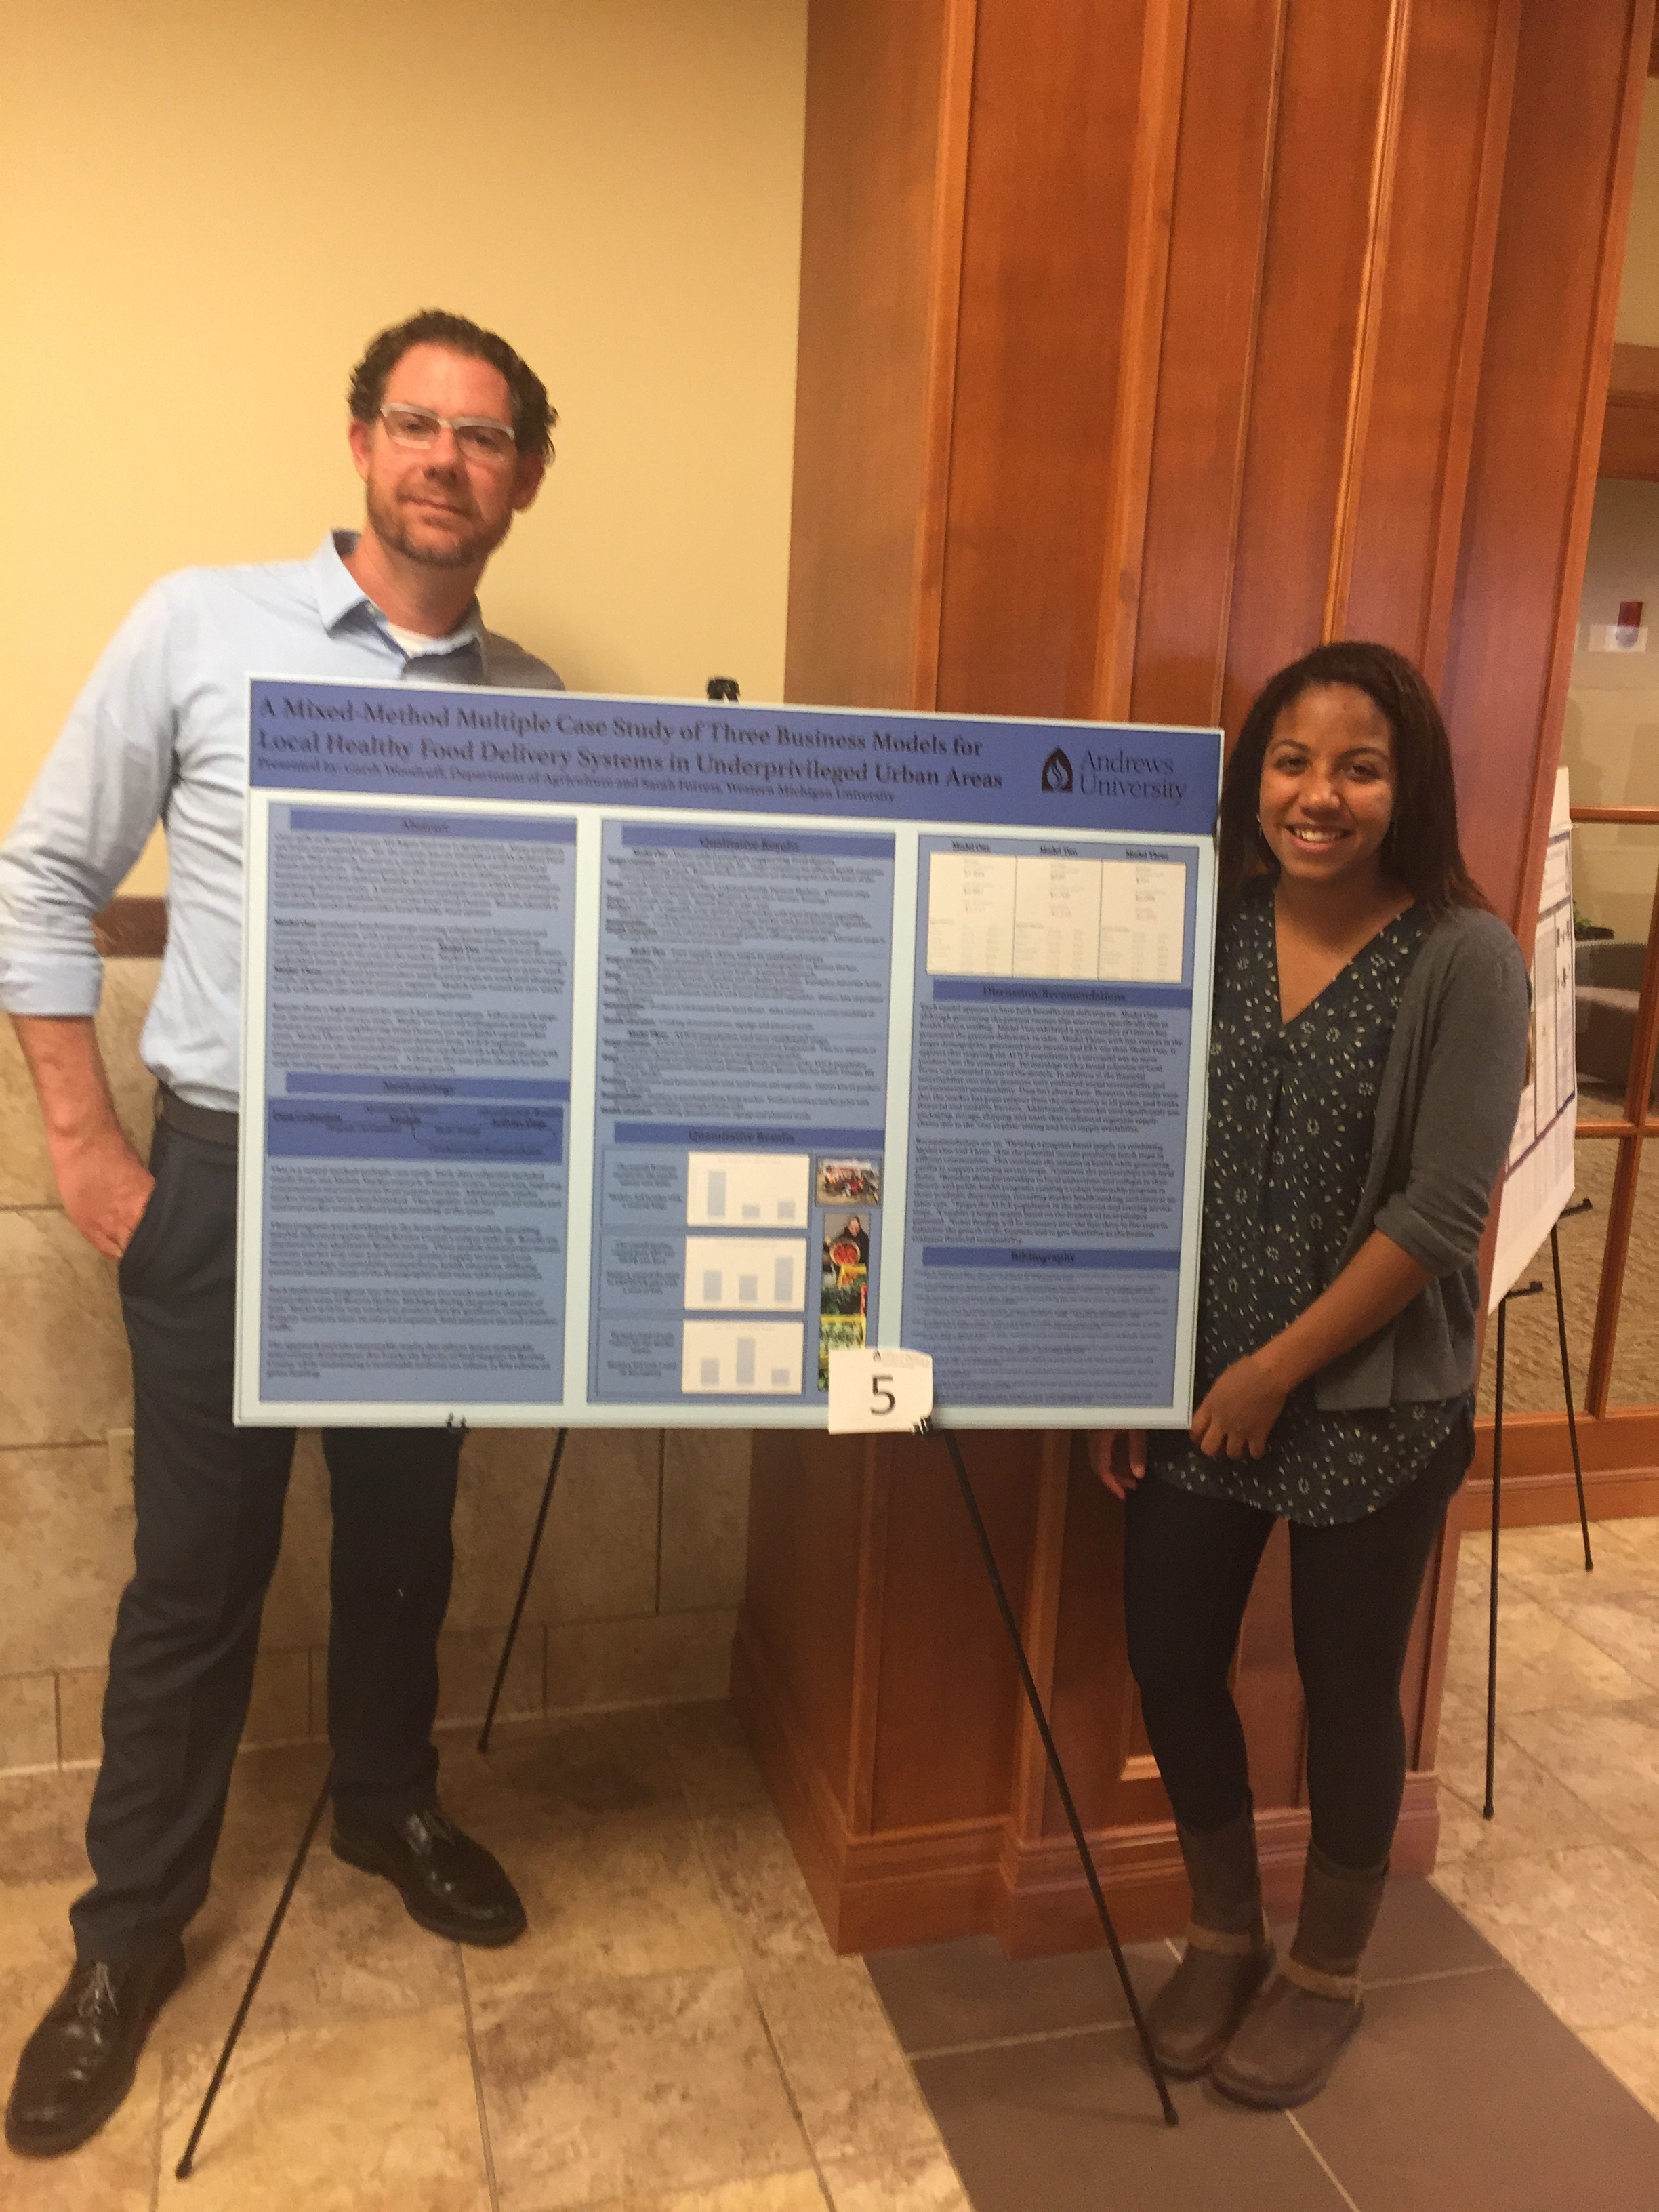 Research Poster - 2017 Michigan Academy of Science, Arts & Letters poster presentation. This is me with our Mobile Market Manager Sarah Forrest. Also presented at the 8th Annual Andrews University (2016) Celebration of Research & Creative Scholarship Event. See the published Abstract at MASAL.